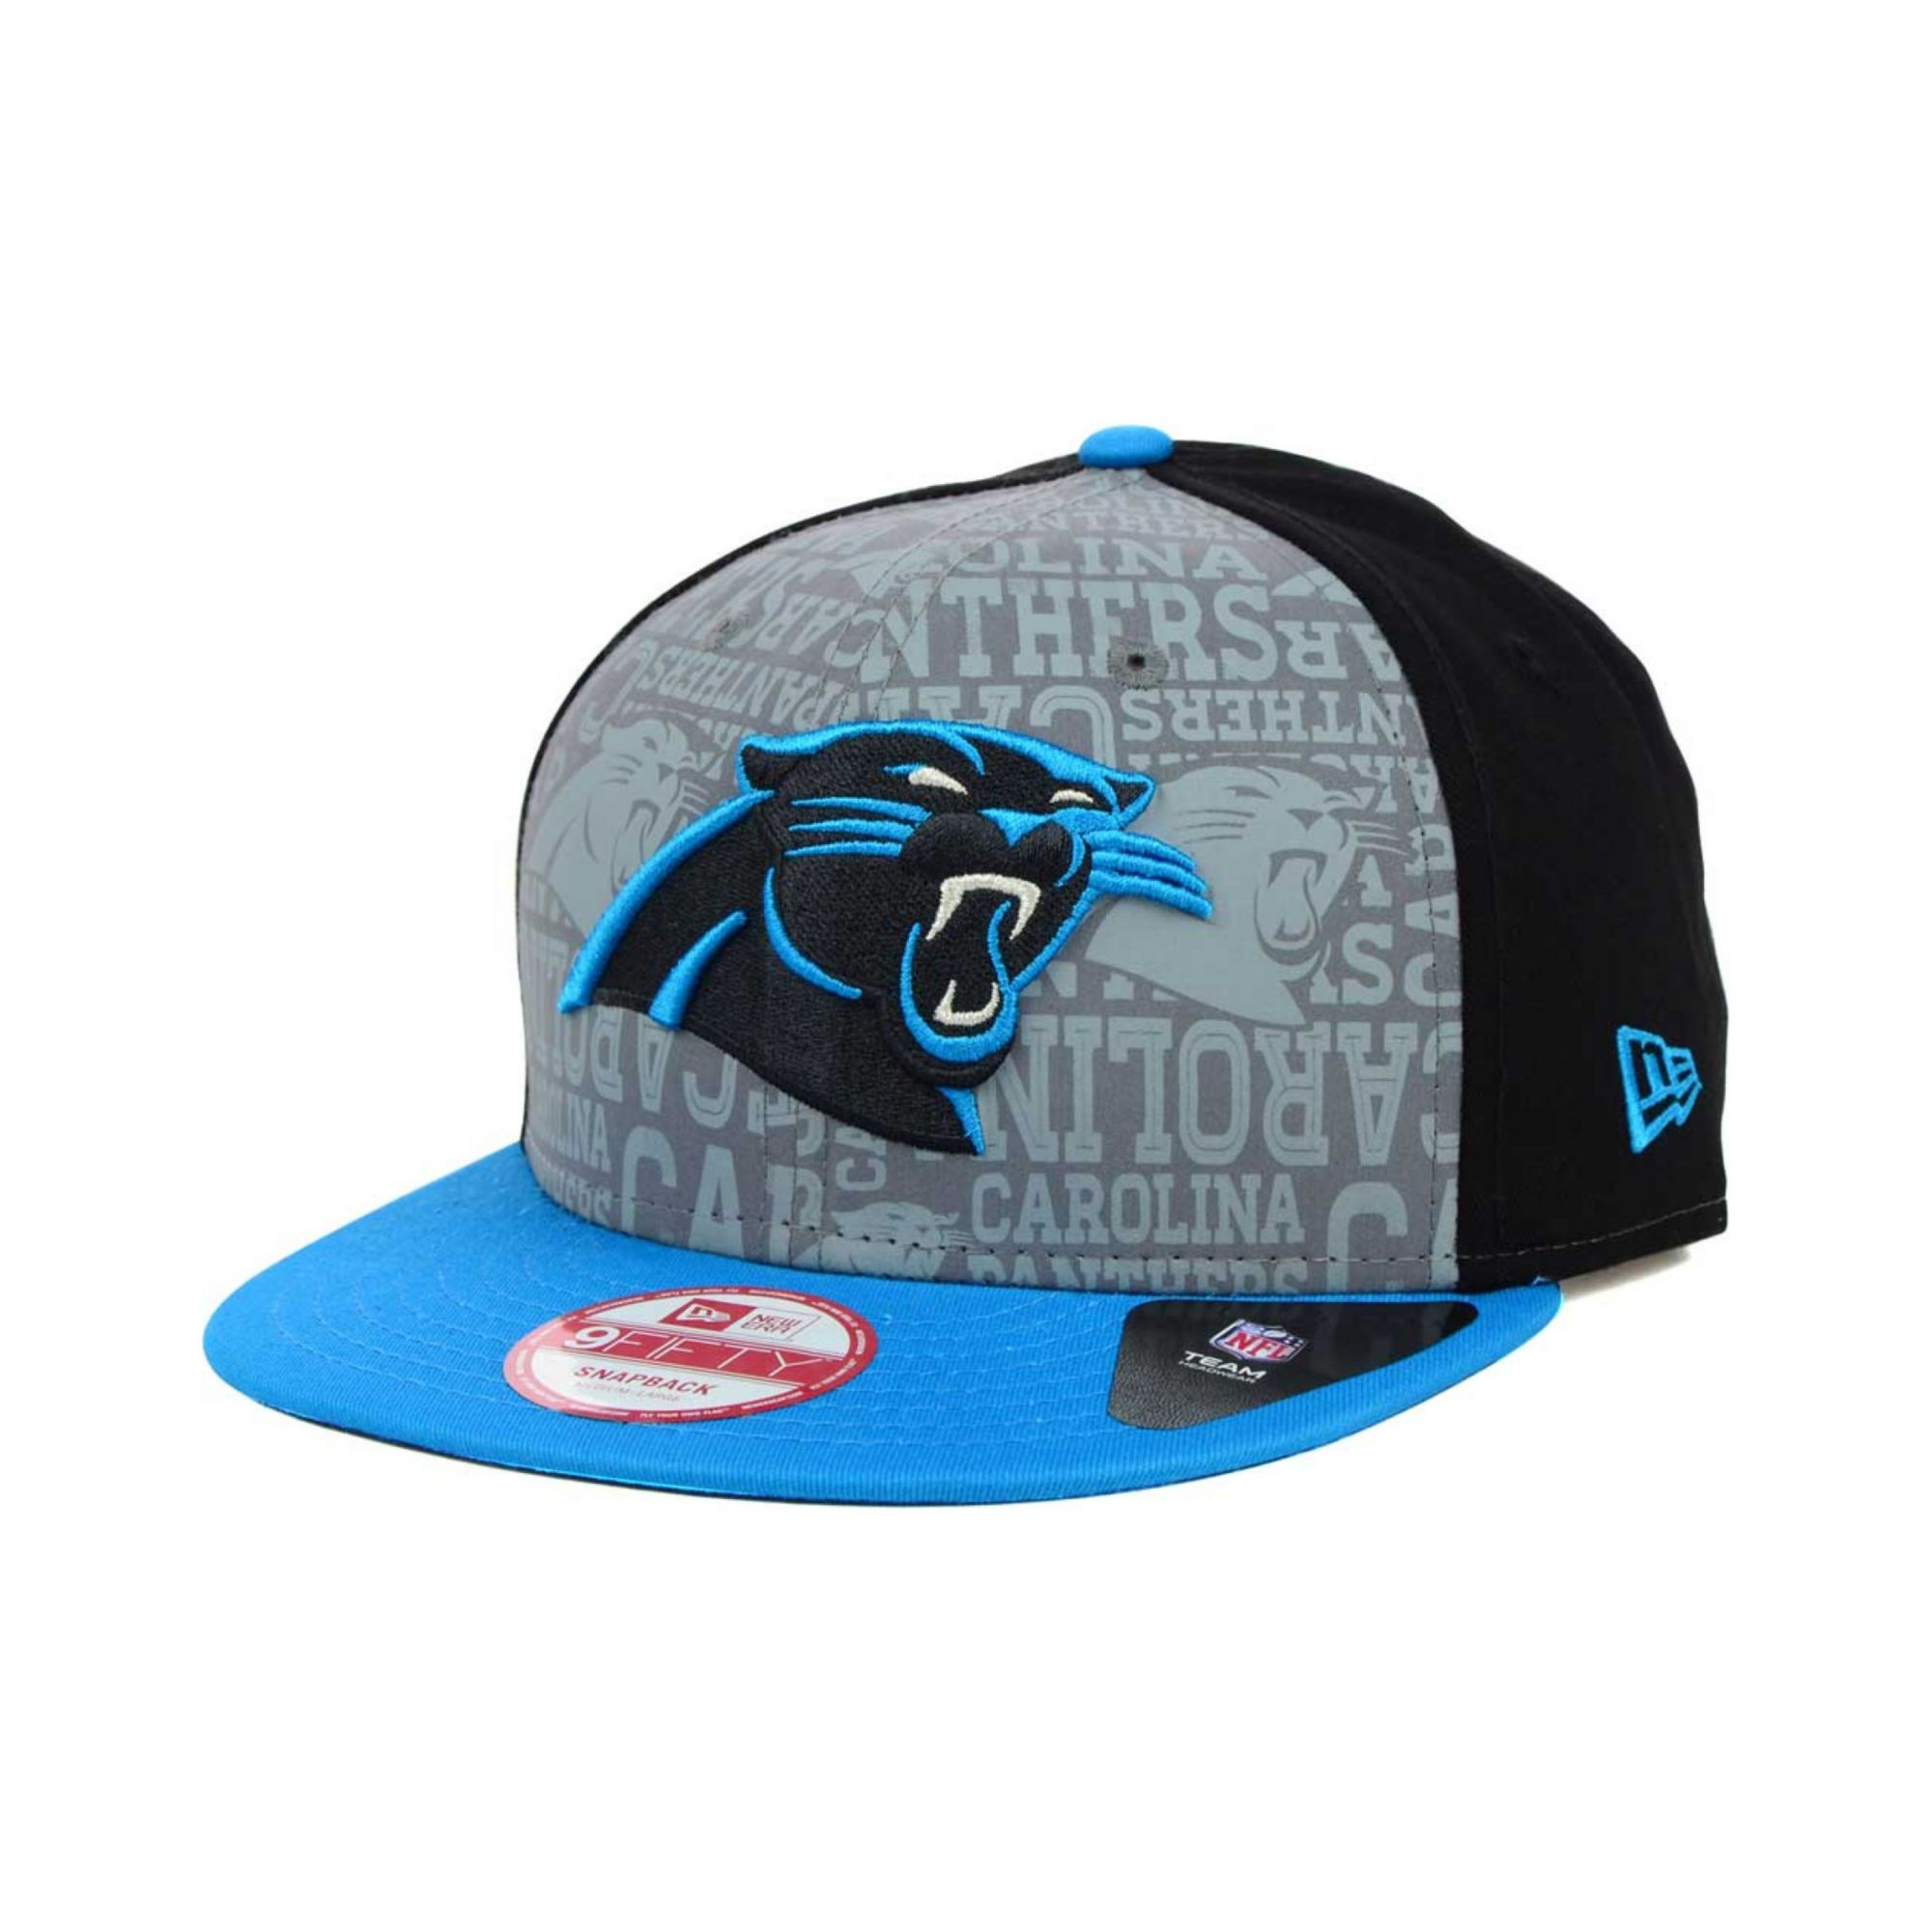 ... clearance lyst ktz carolina panthers nfl draft 9fifty snapback cap in  blue e1000 b5eb8 f14c3e7c8